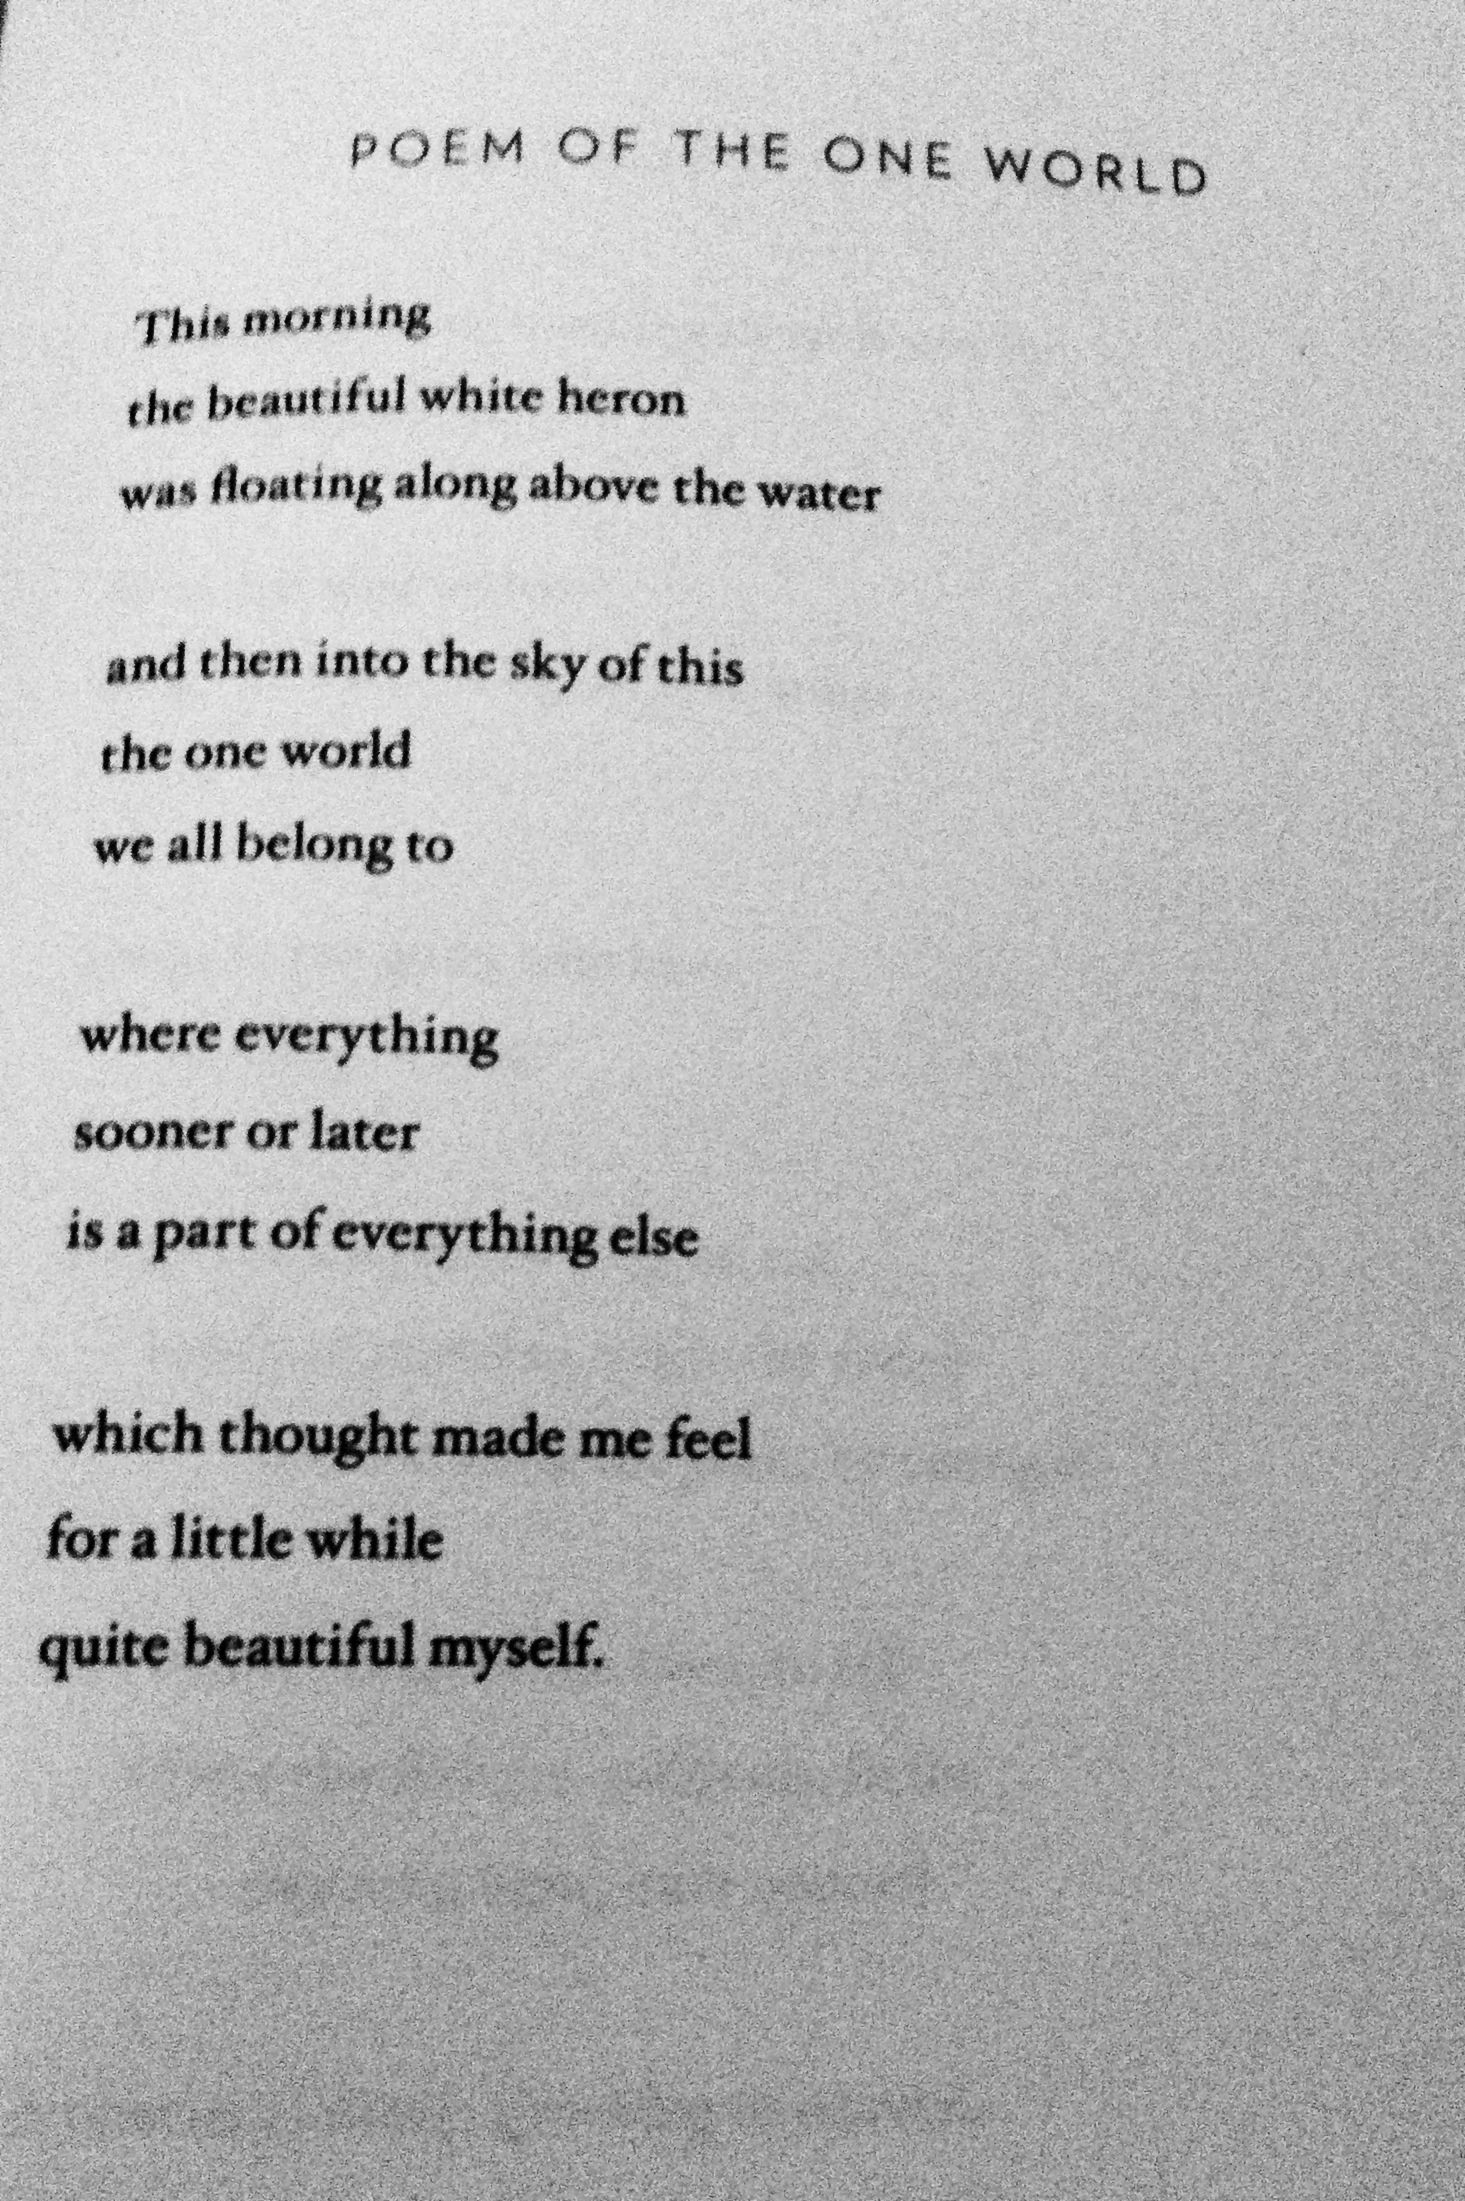 Poem of the One World by Mary Oliver